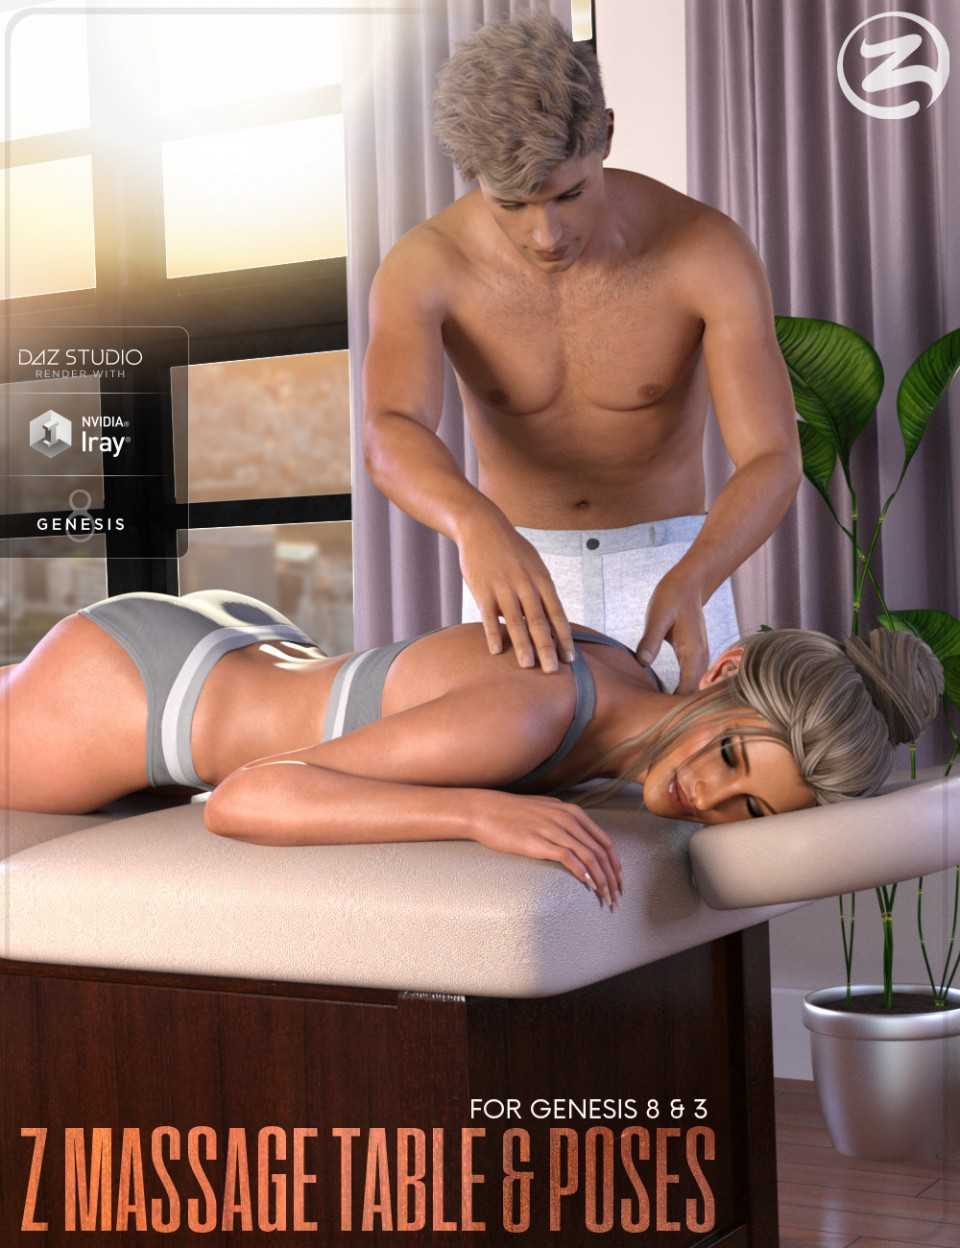 Z Massage Table – Prop and Poses for Genesis 3 & 8